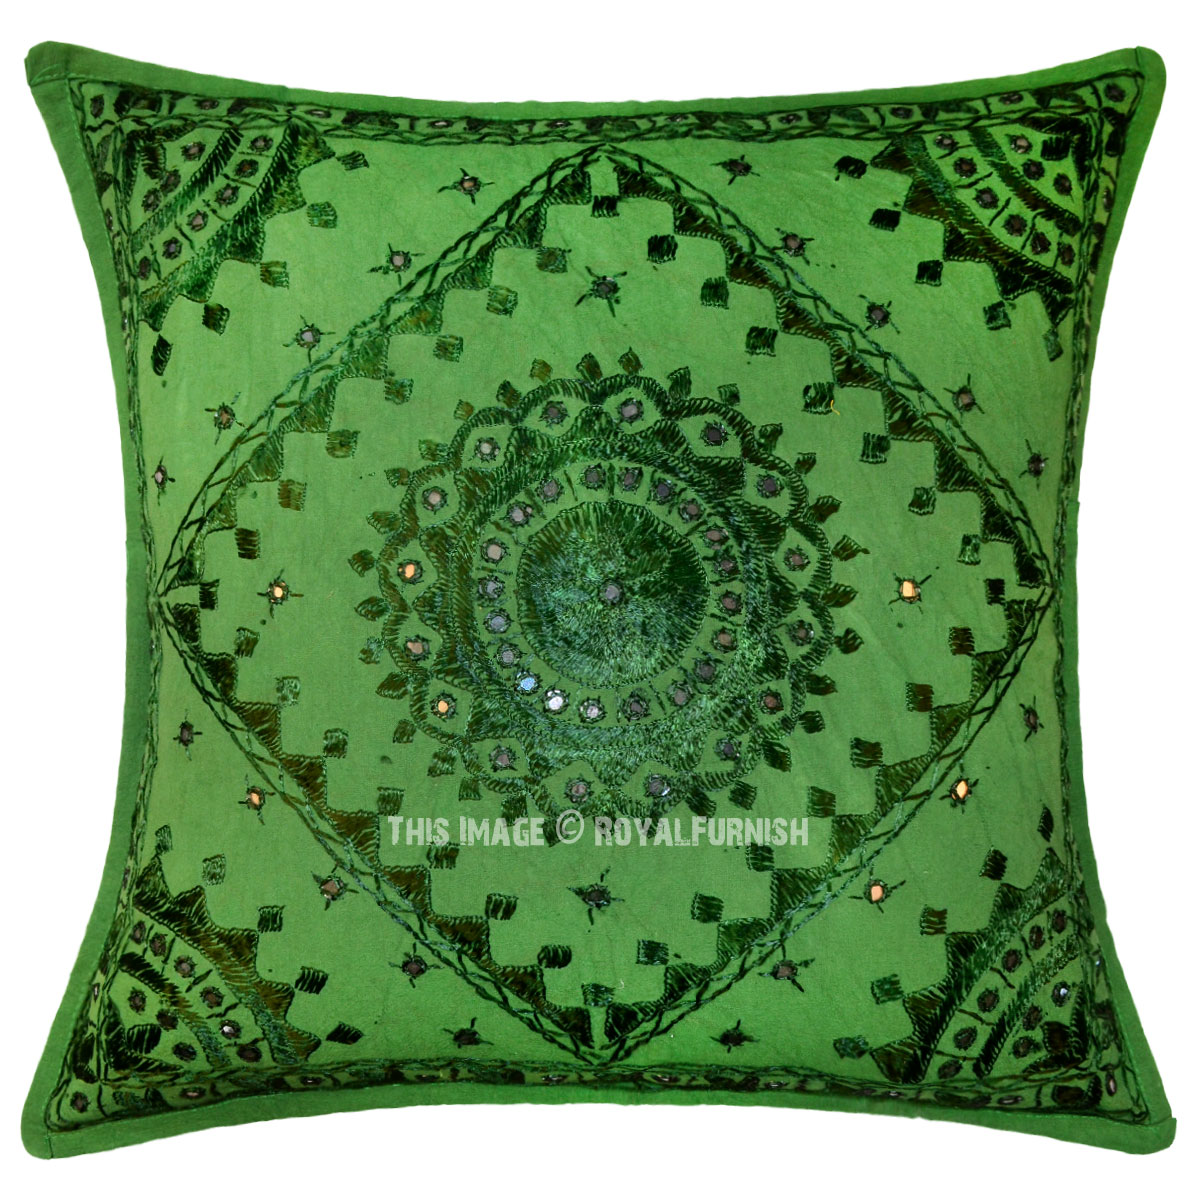 Throw Me A Pillow Coupon Code : Green Mirror Embroidered Cotton Sofa Indian Throw Pillow - RoyalFurnish.com